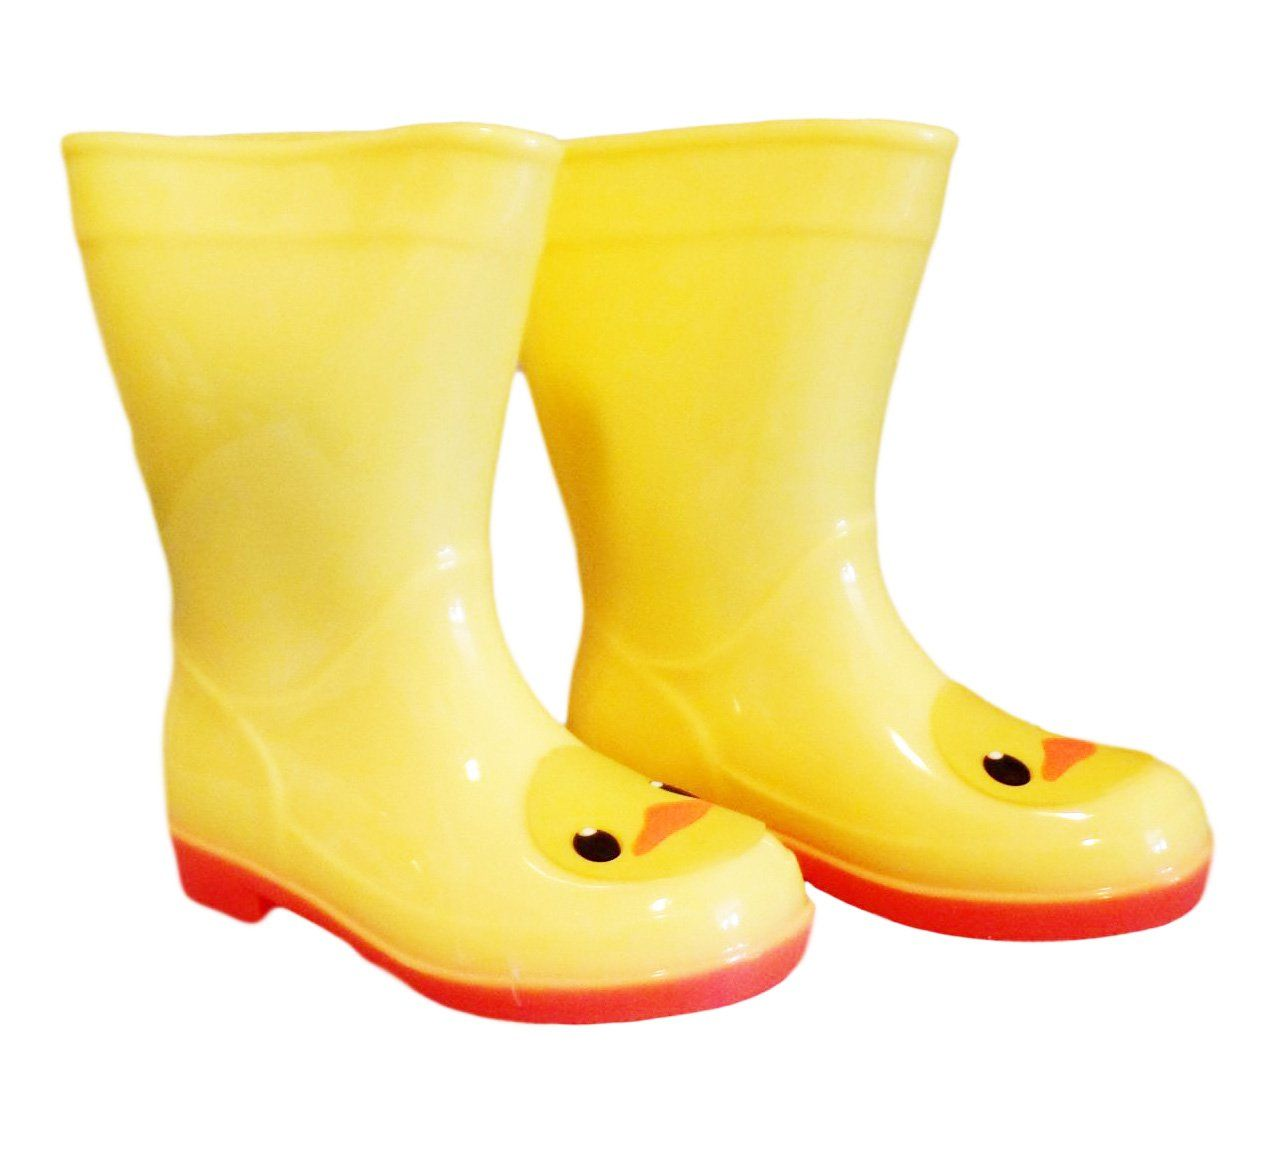 Soho Kids Children S Rubber Cute Animal Rain Boot 5 M Us Toddler Duck Built To Keep Little Feet Dry They Are Waterproof Rain Boots Boots Rubber Rain Boots